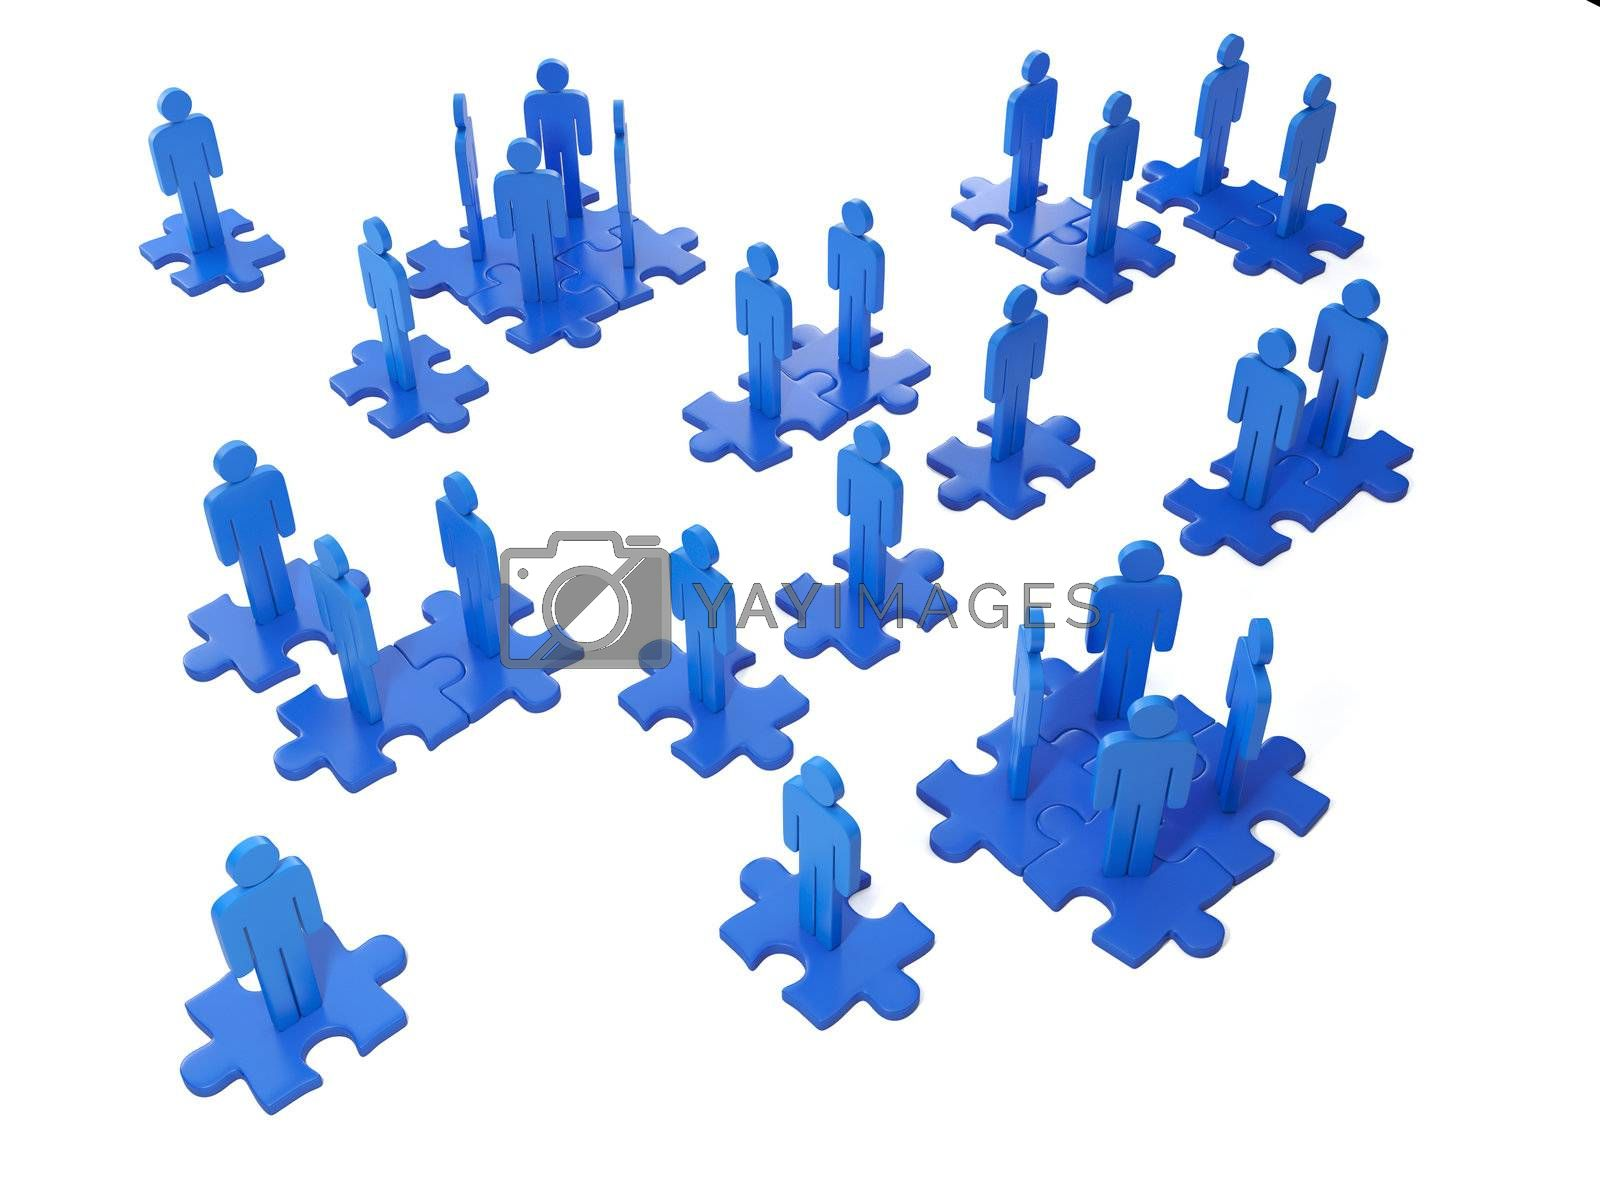 3d Illustration: Business ideas. Team work and cooperation of the people